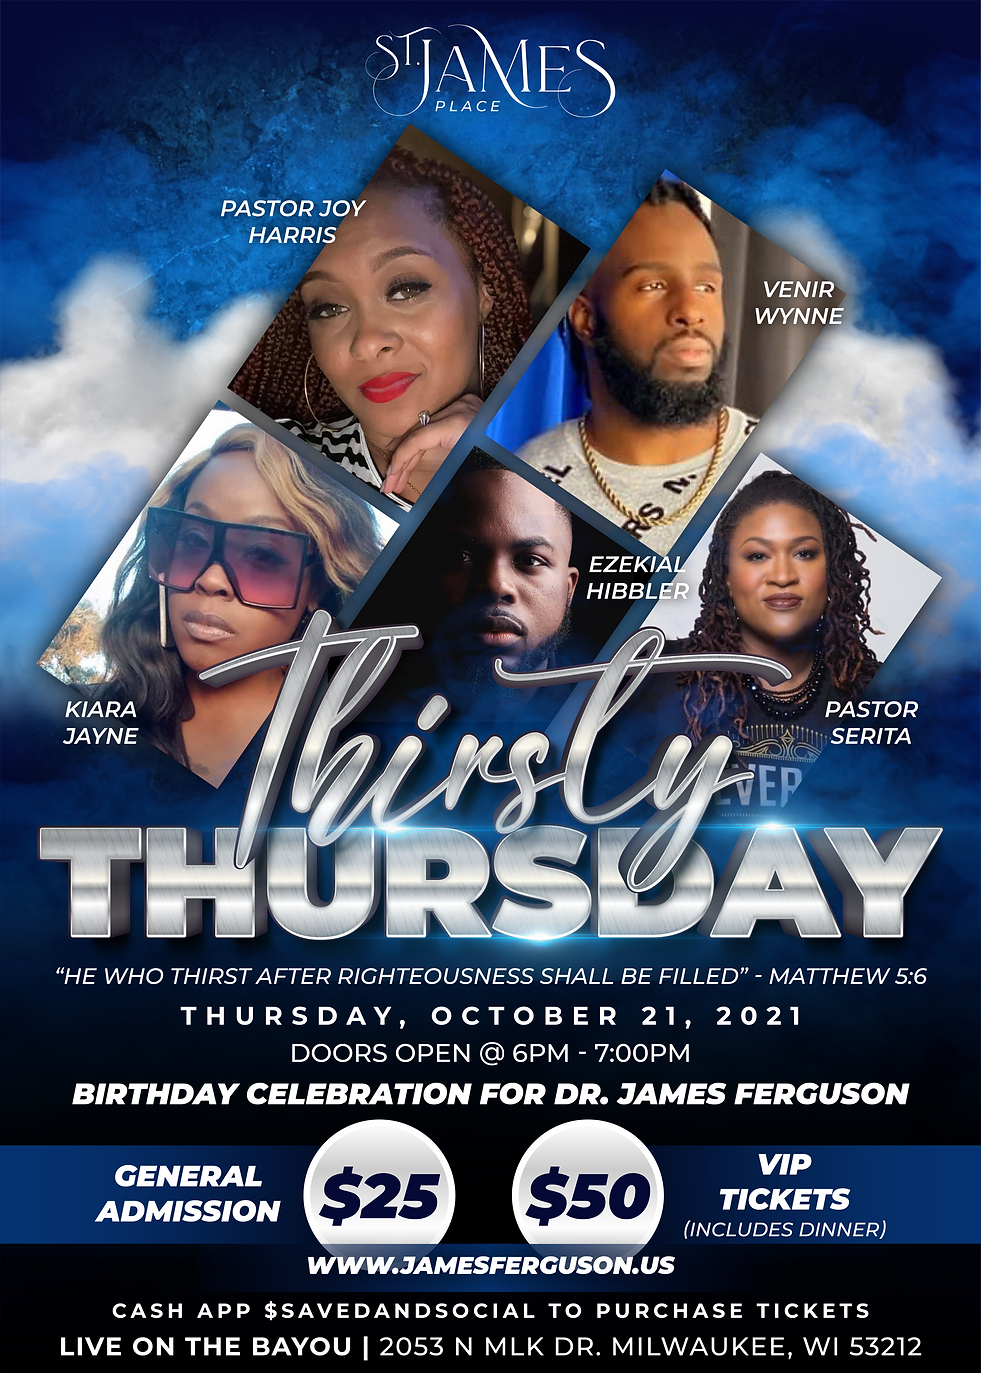 St James Place Thirsty Thursday FLyer-01.png